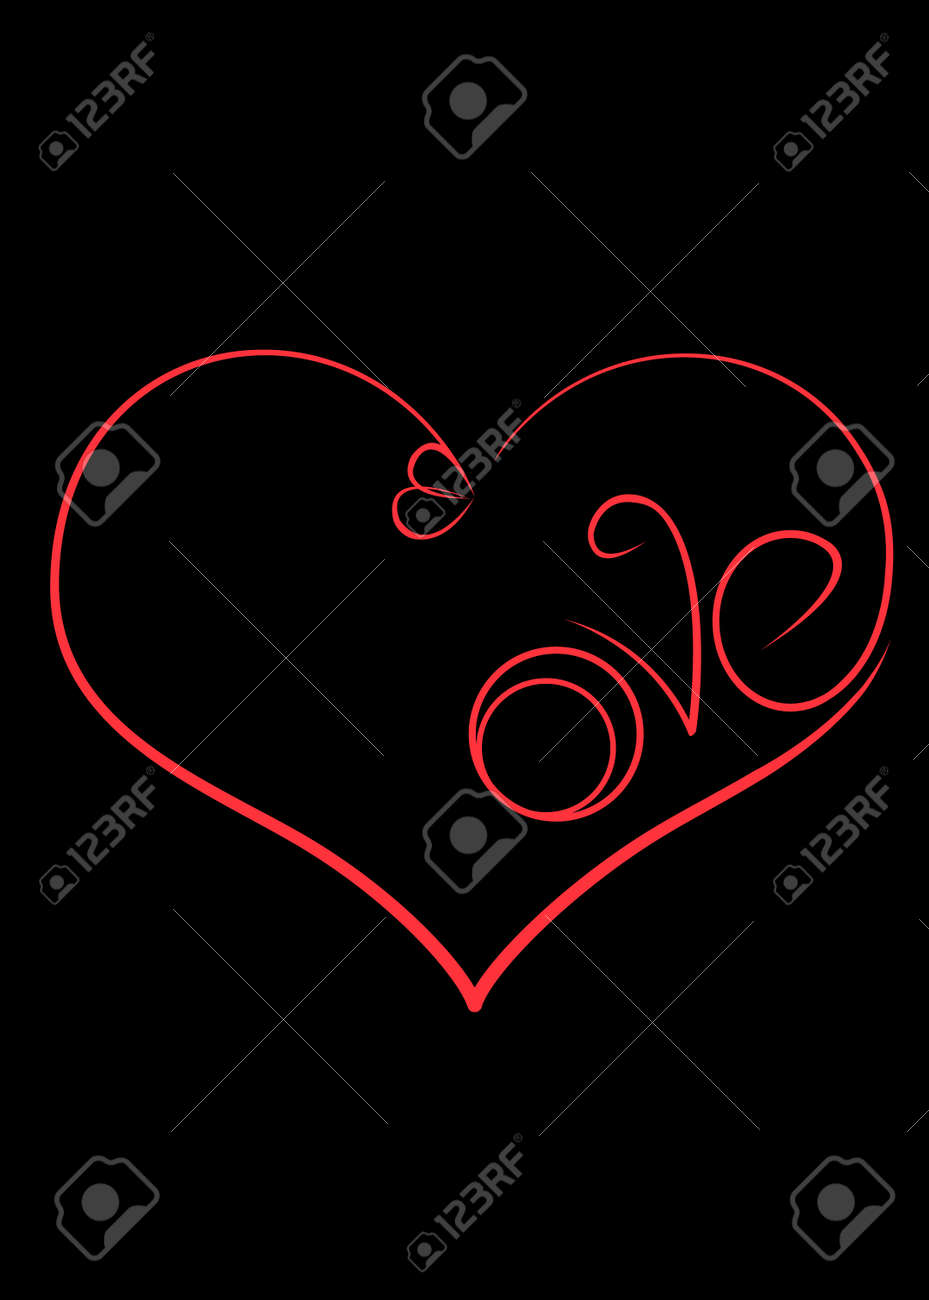 The Symbol Of Love Is A Heart With Engagement Rings And The